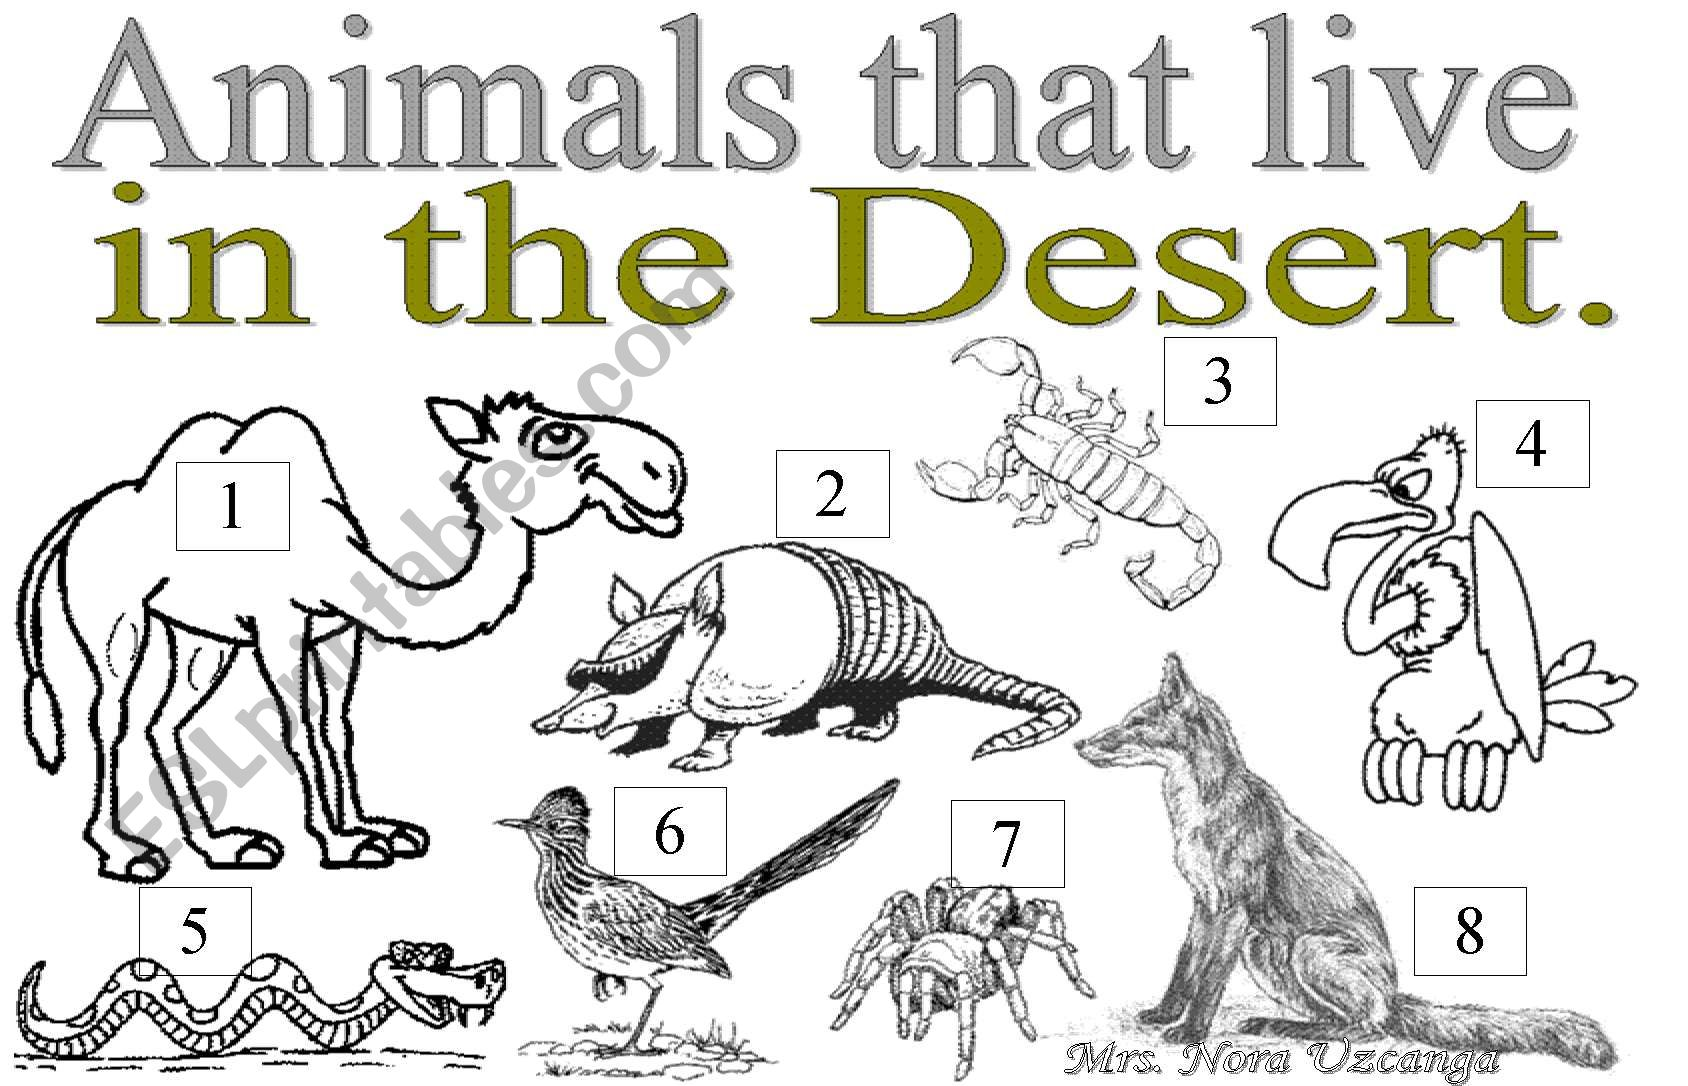 Animals Yhat Live In The Desert